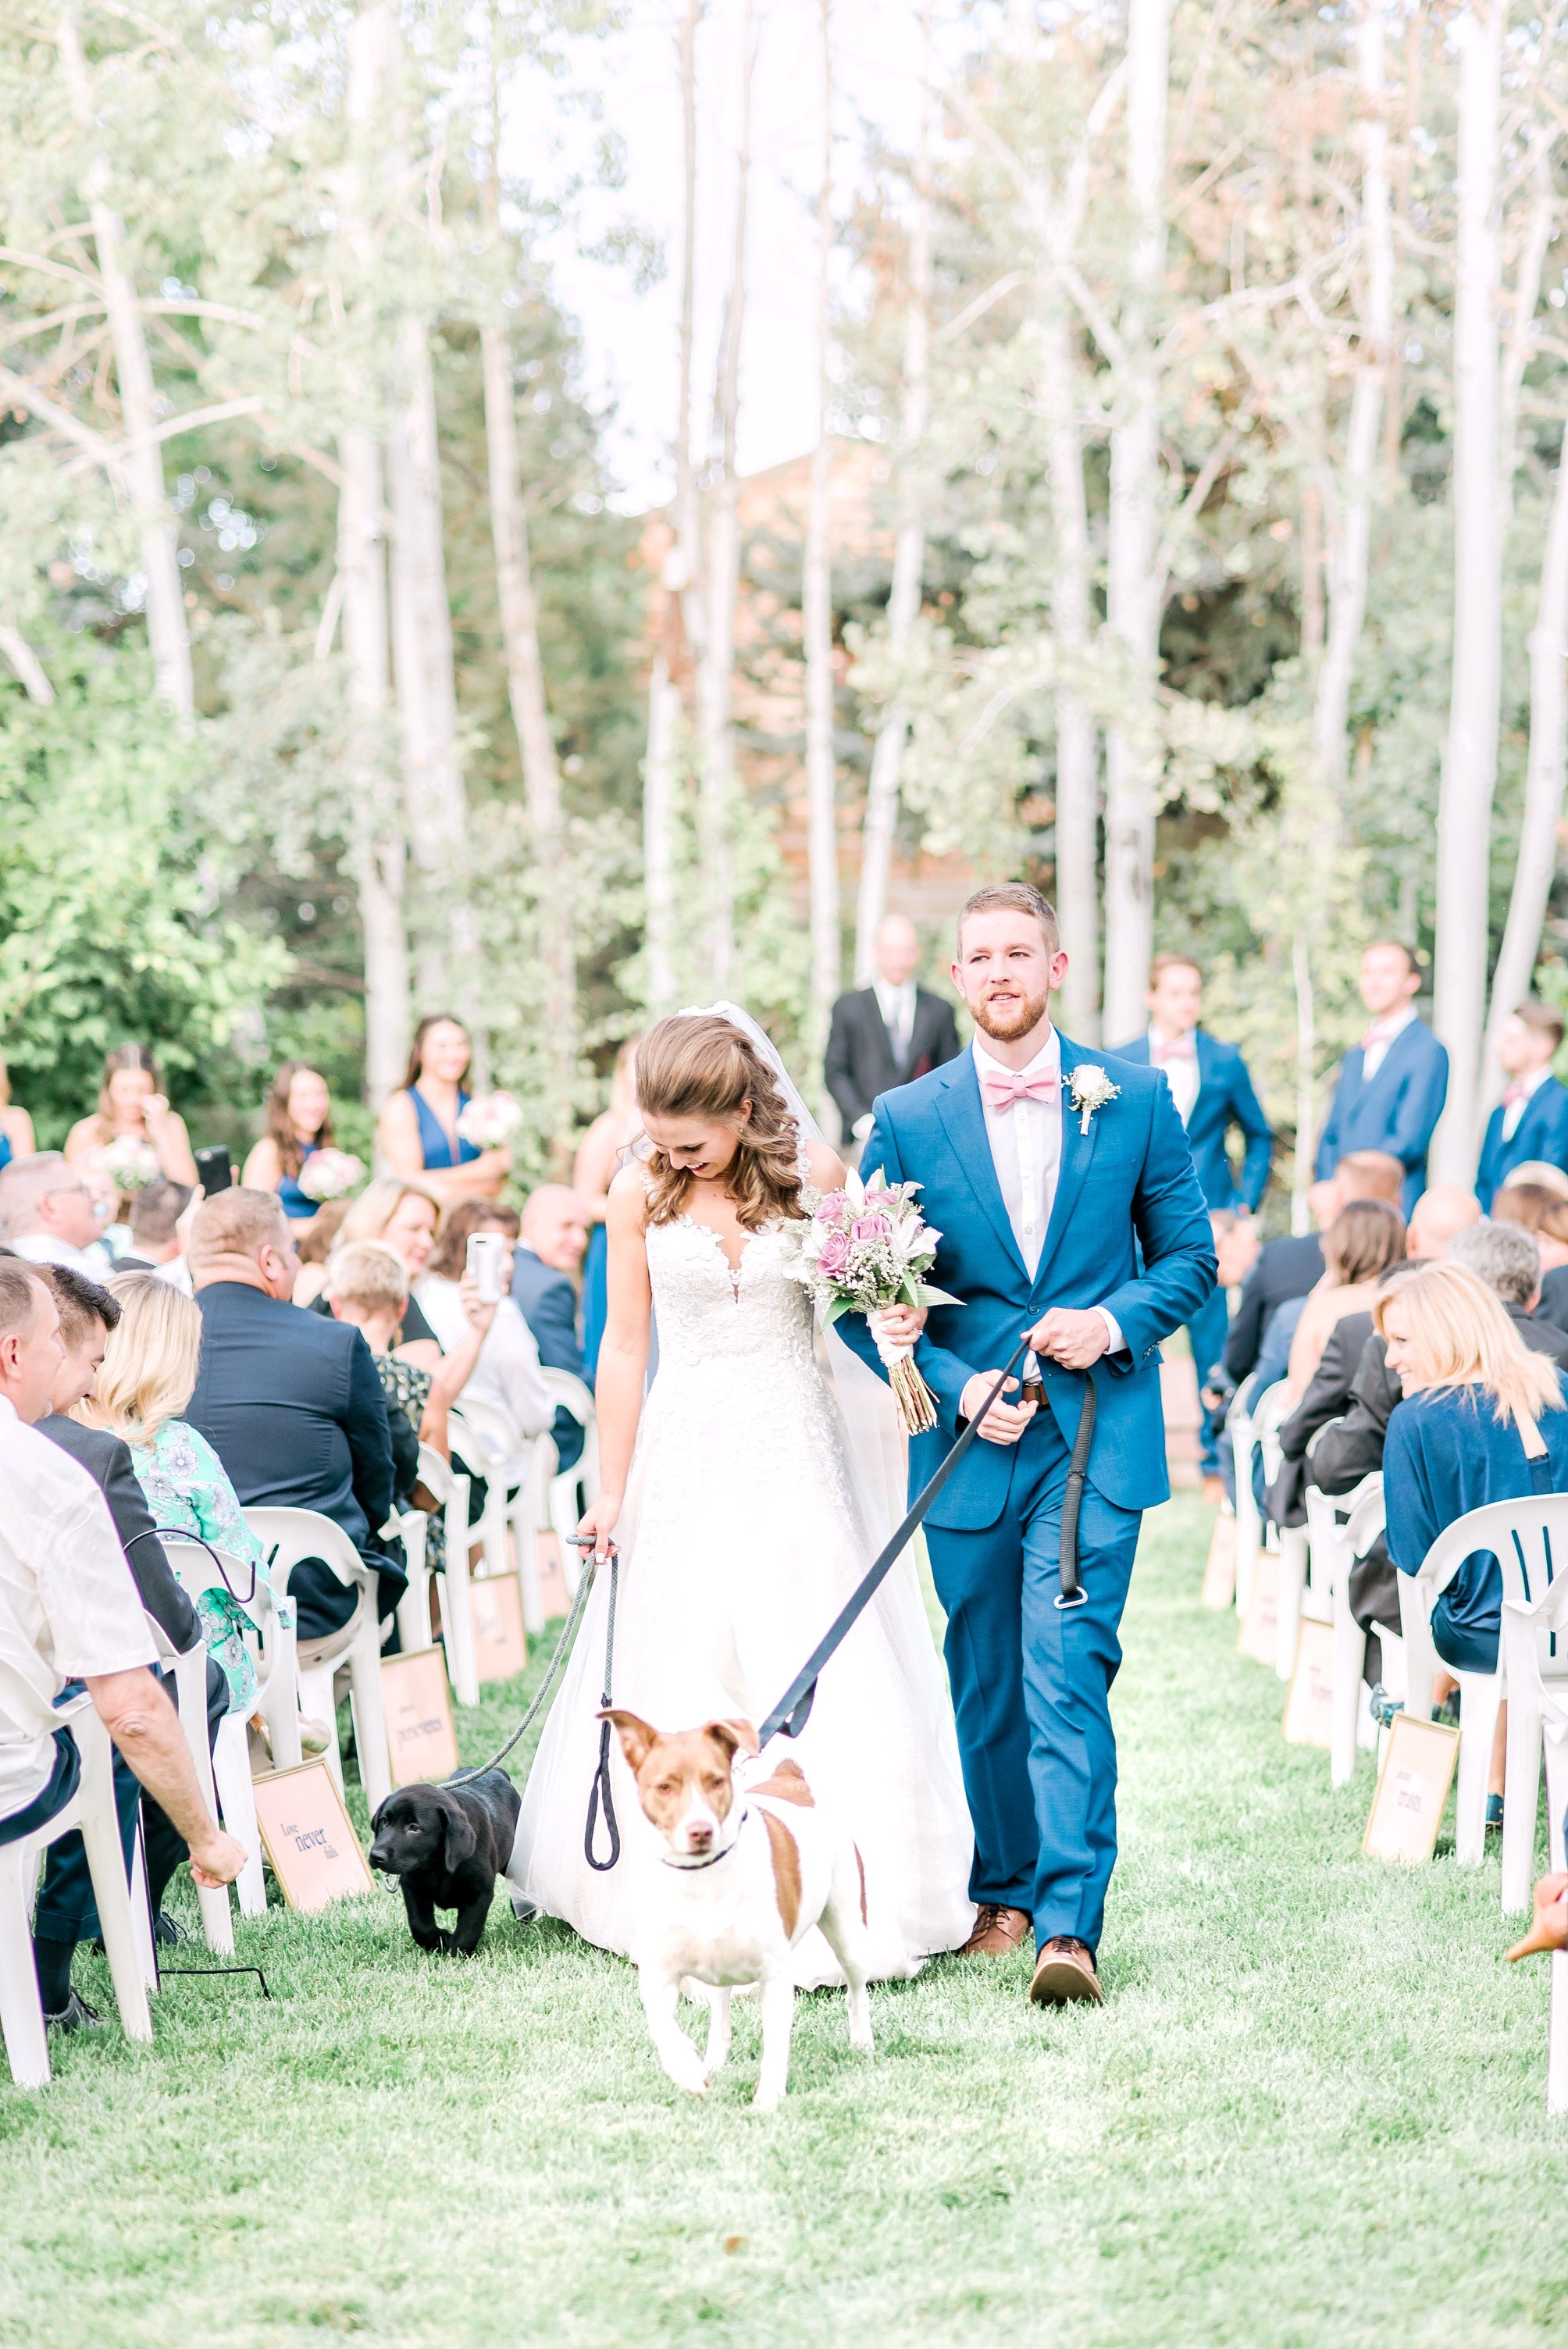 wedding with dogs, must have wedding photos, bride and groom walking down the aisle with dogs, puppies at weddings